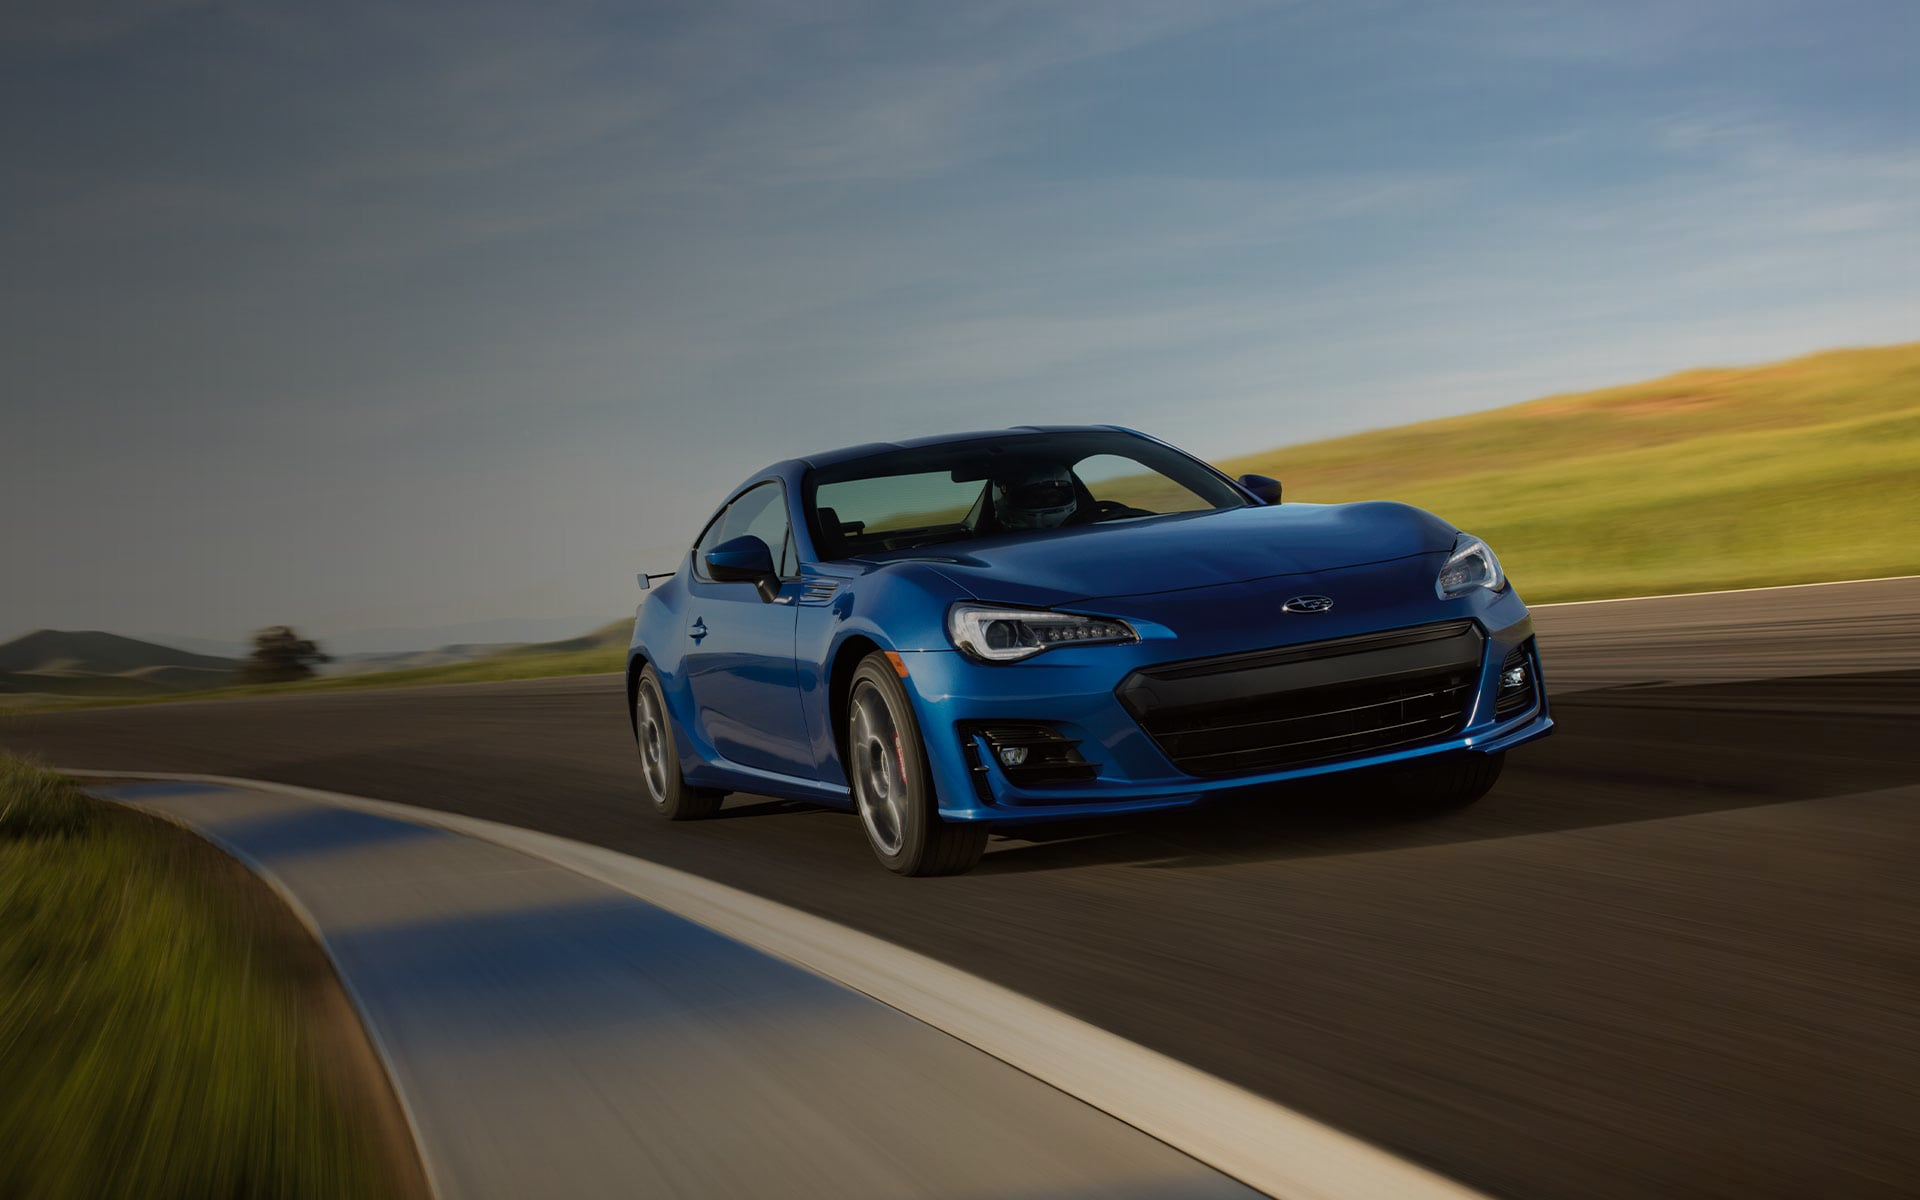 A 2020 BRZ cornering on a race track.